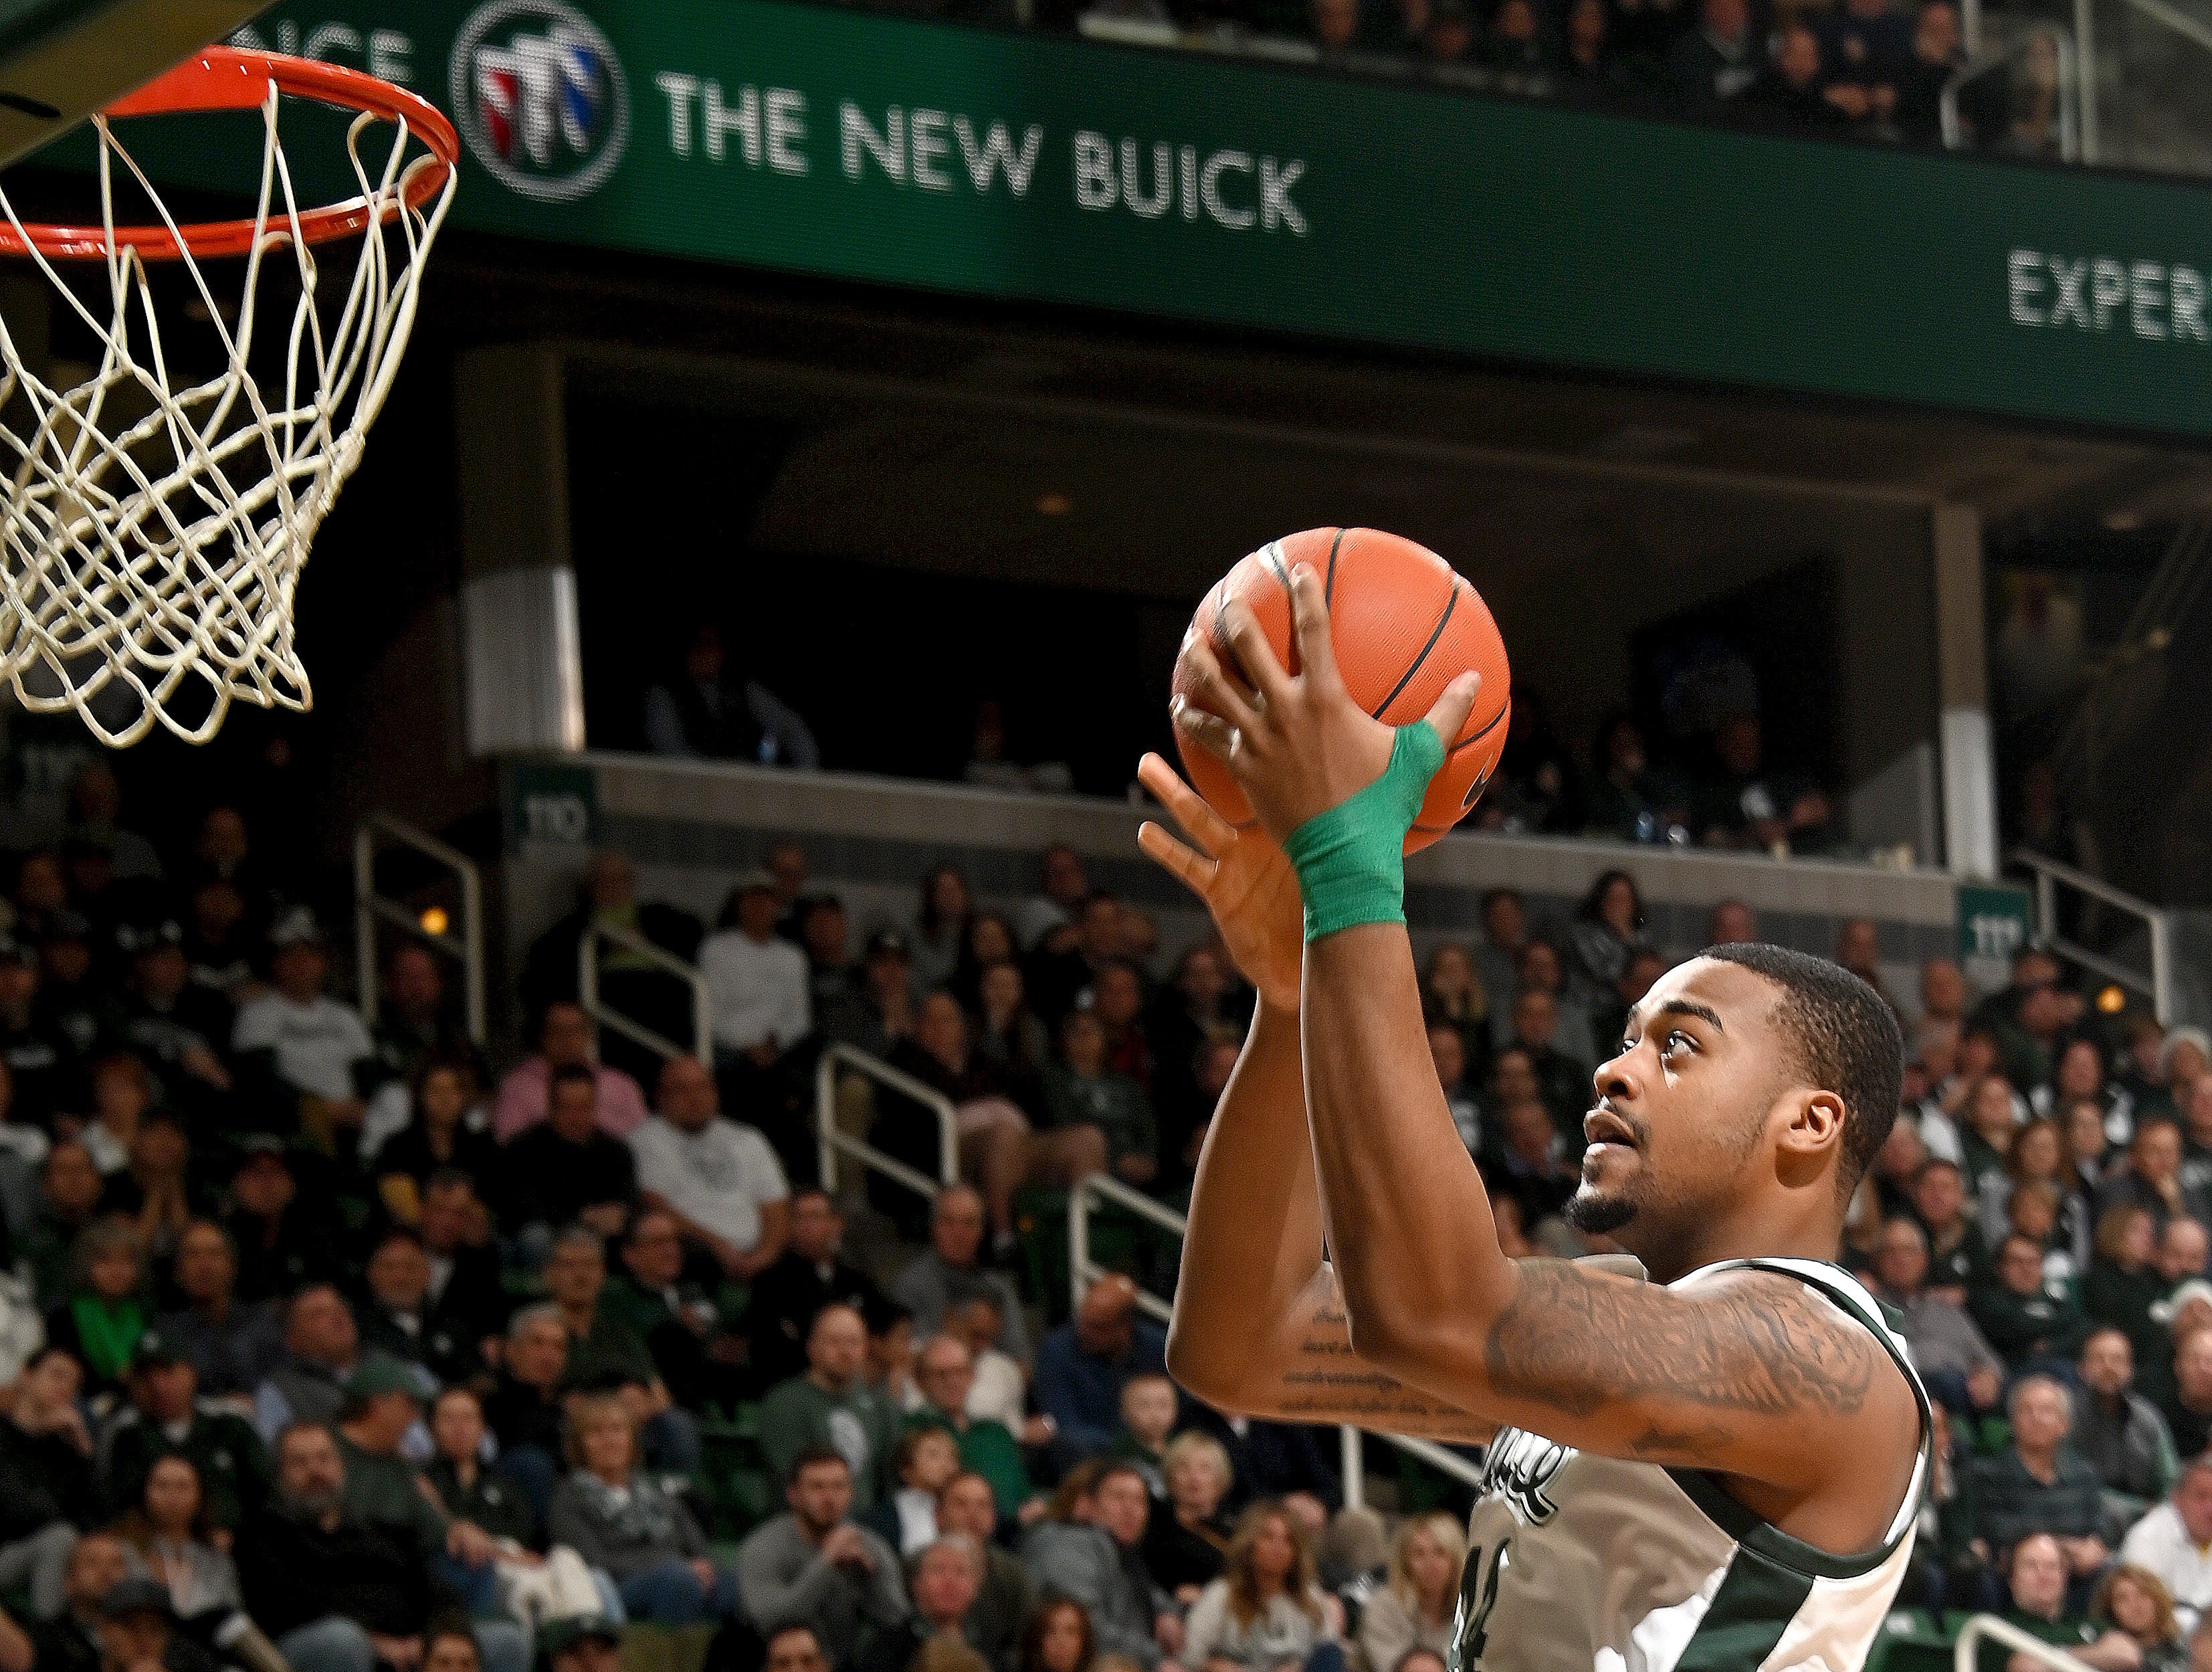 Nick Ward puts in a little jump shot in the second half.